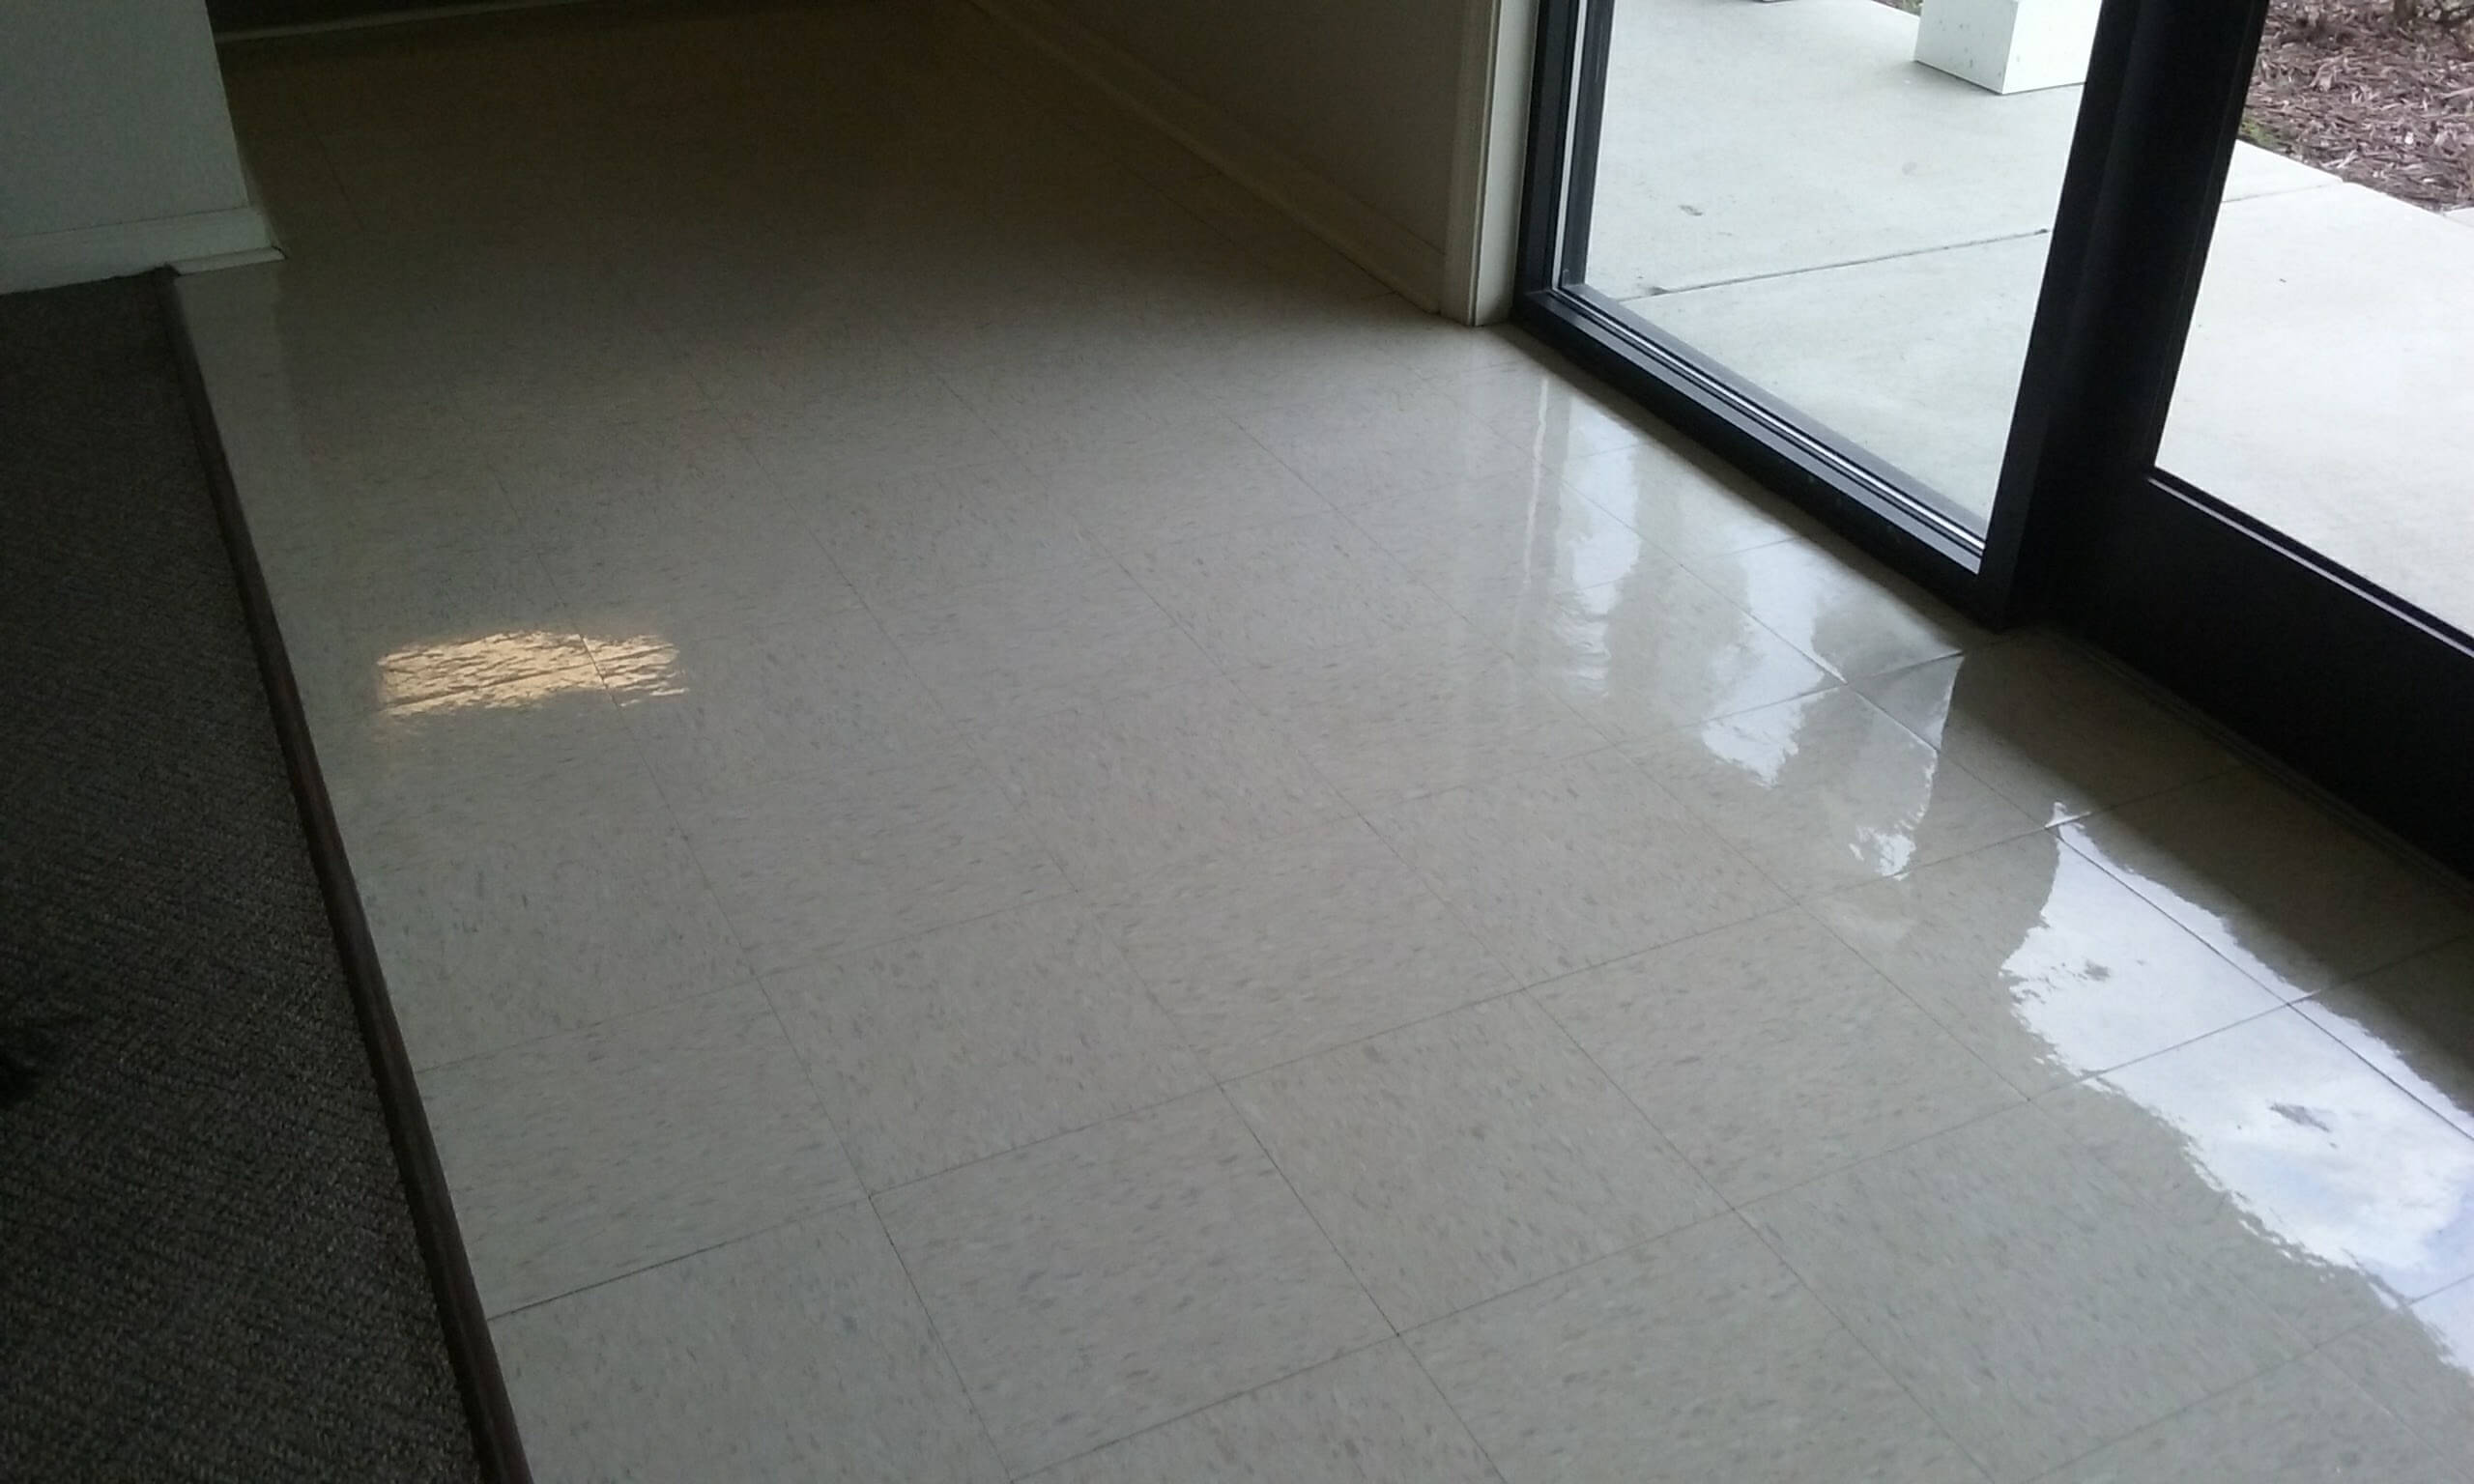 Carolina Pro Clean waxed floor 2